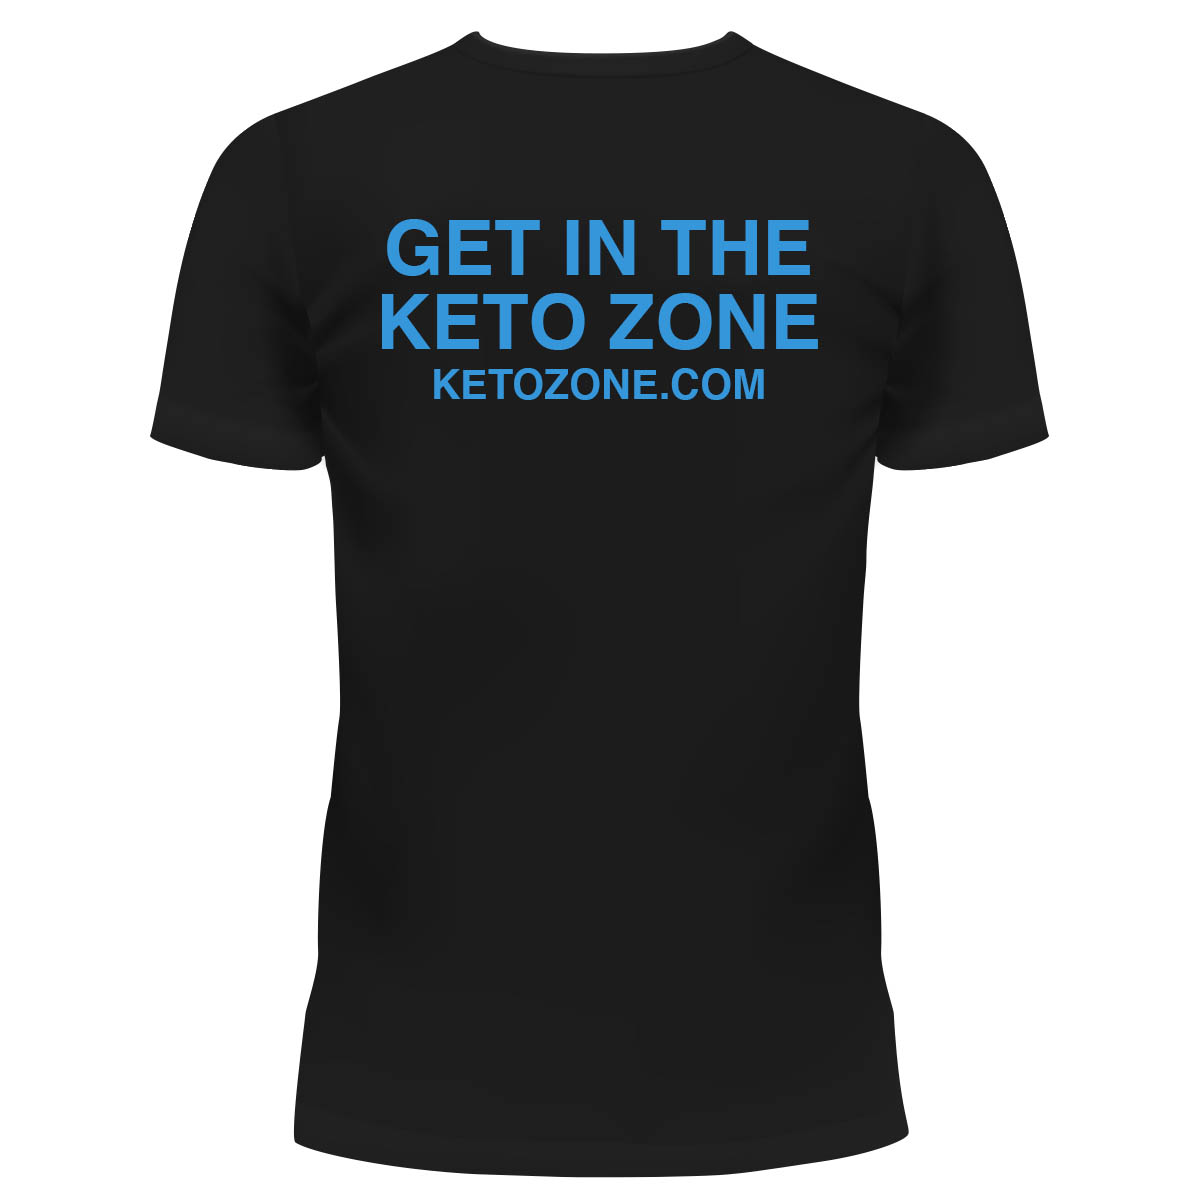 New! Keto Shirts For Men (Black)